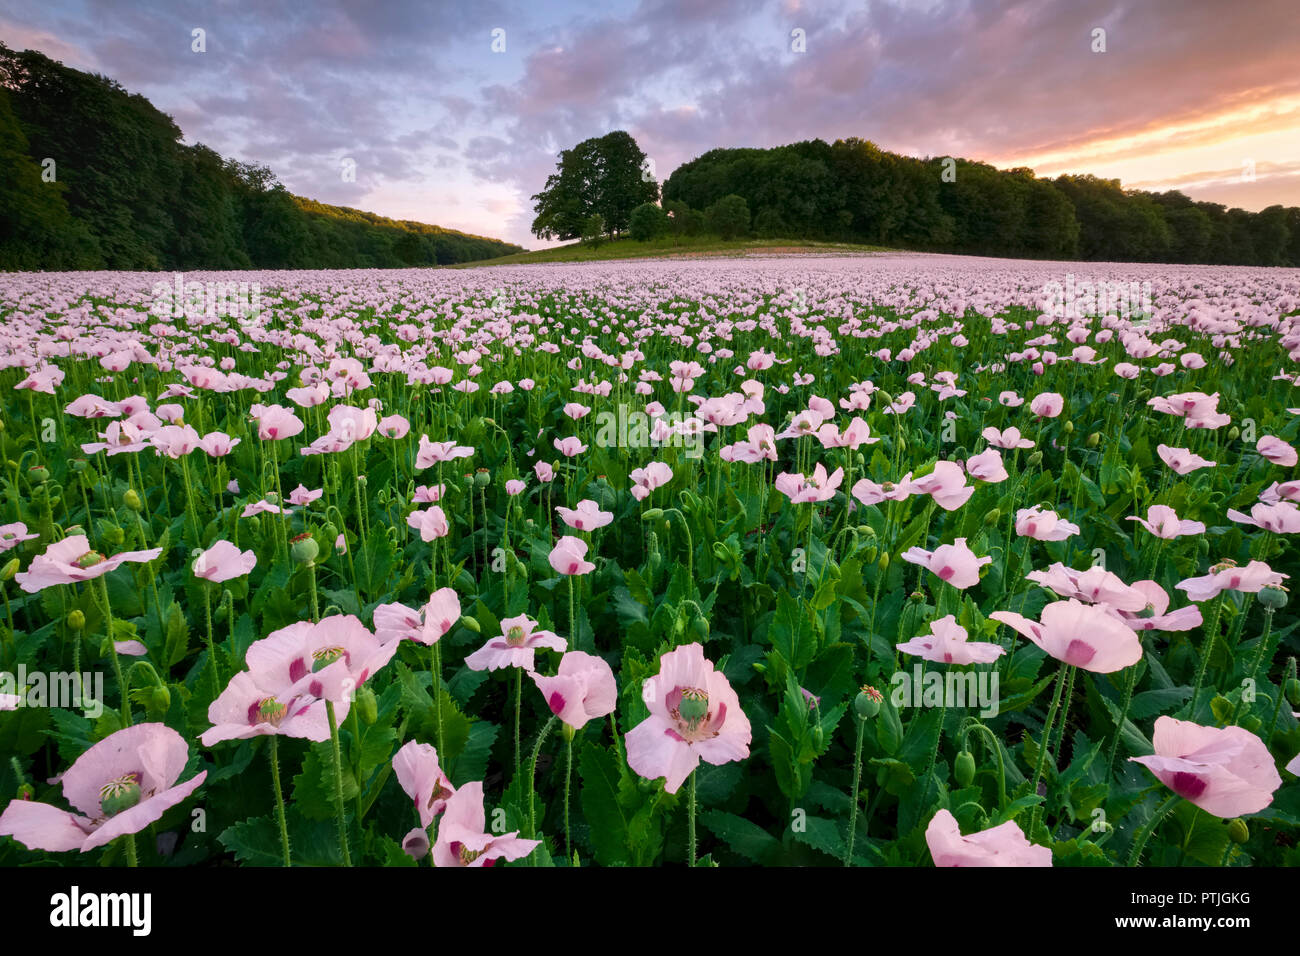 A sea of opium poppies in a field in Dorset. Stock Photo